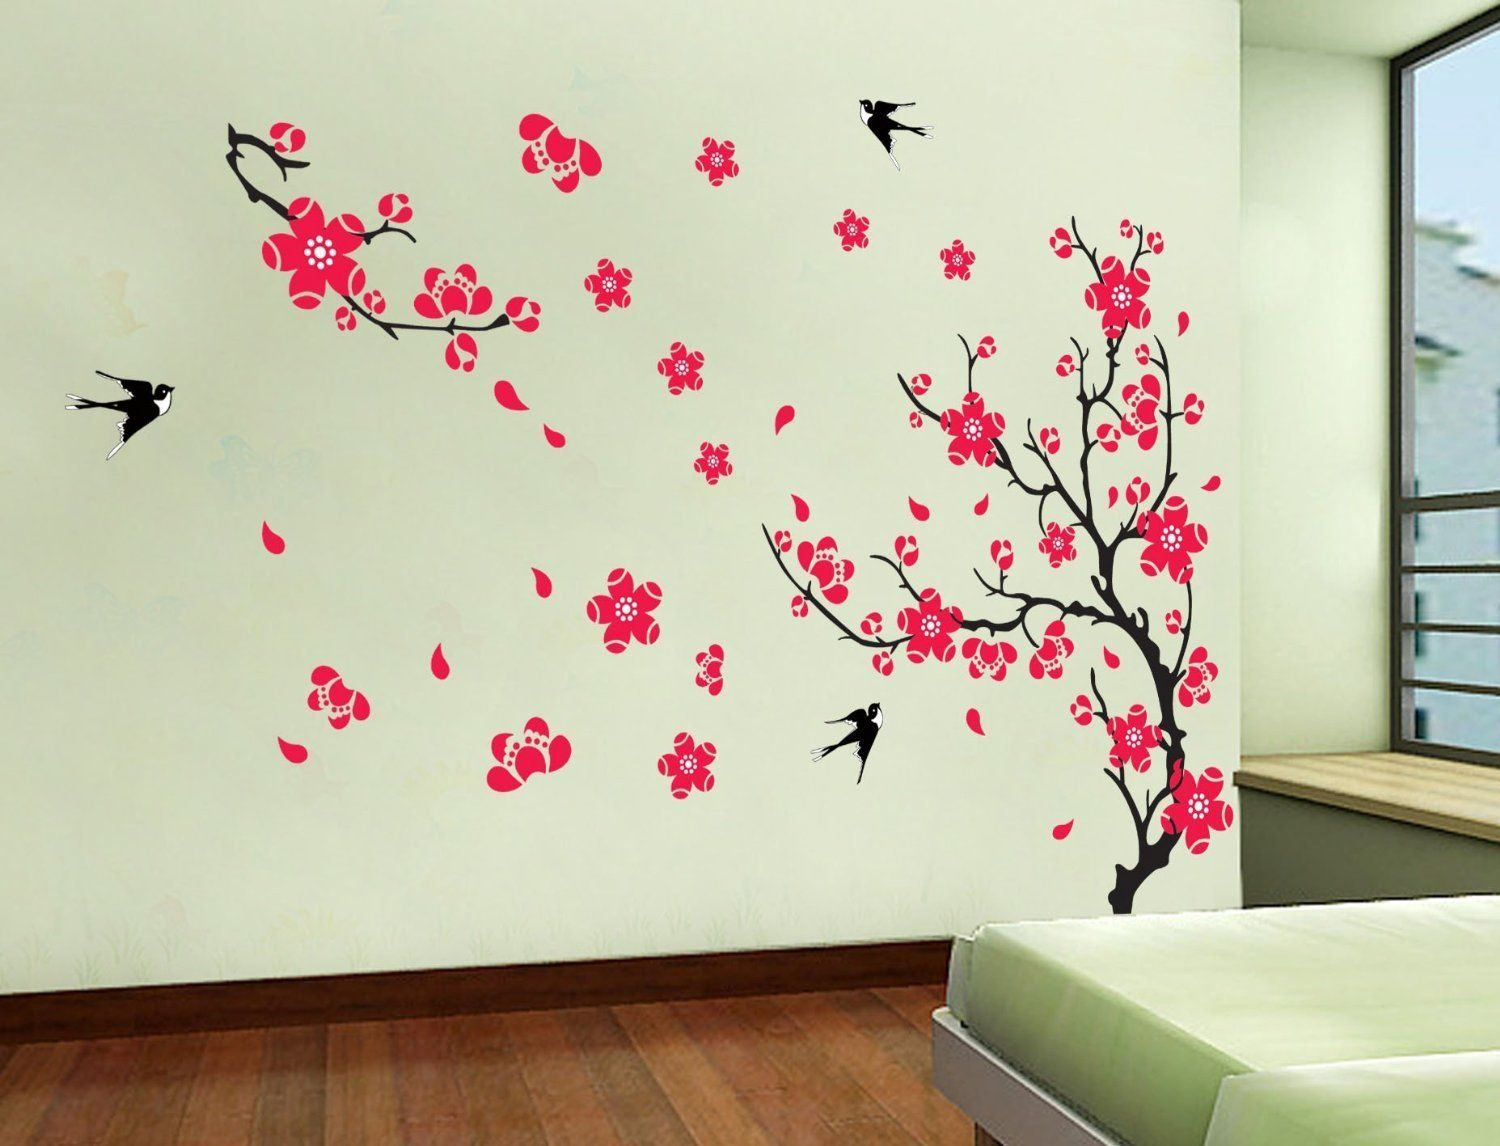 Wall Decals   Http://Amazon.com   YYone Plum Blossom Red Flowers Tree  Branch Swallows Art Wall Mural Home Decor Wall Sticker